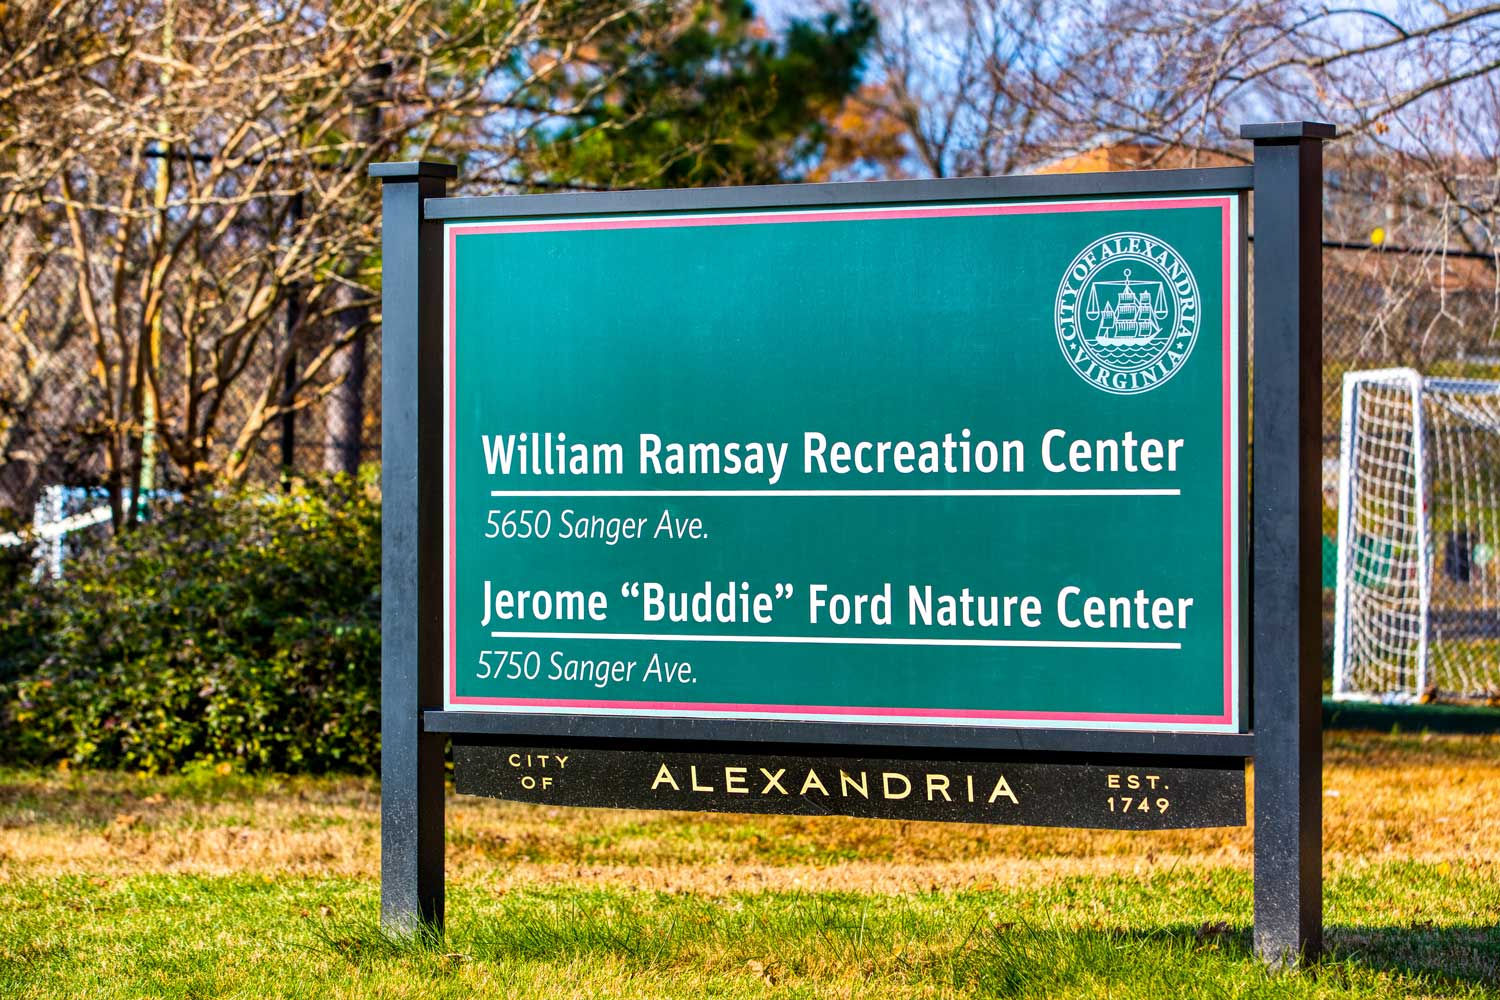 William Ramsay Recreation Center is across from Woodmont Park Apartments